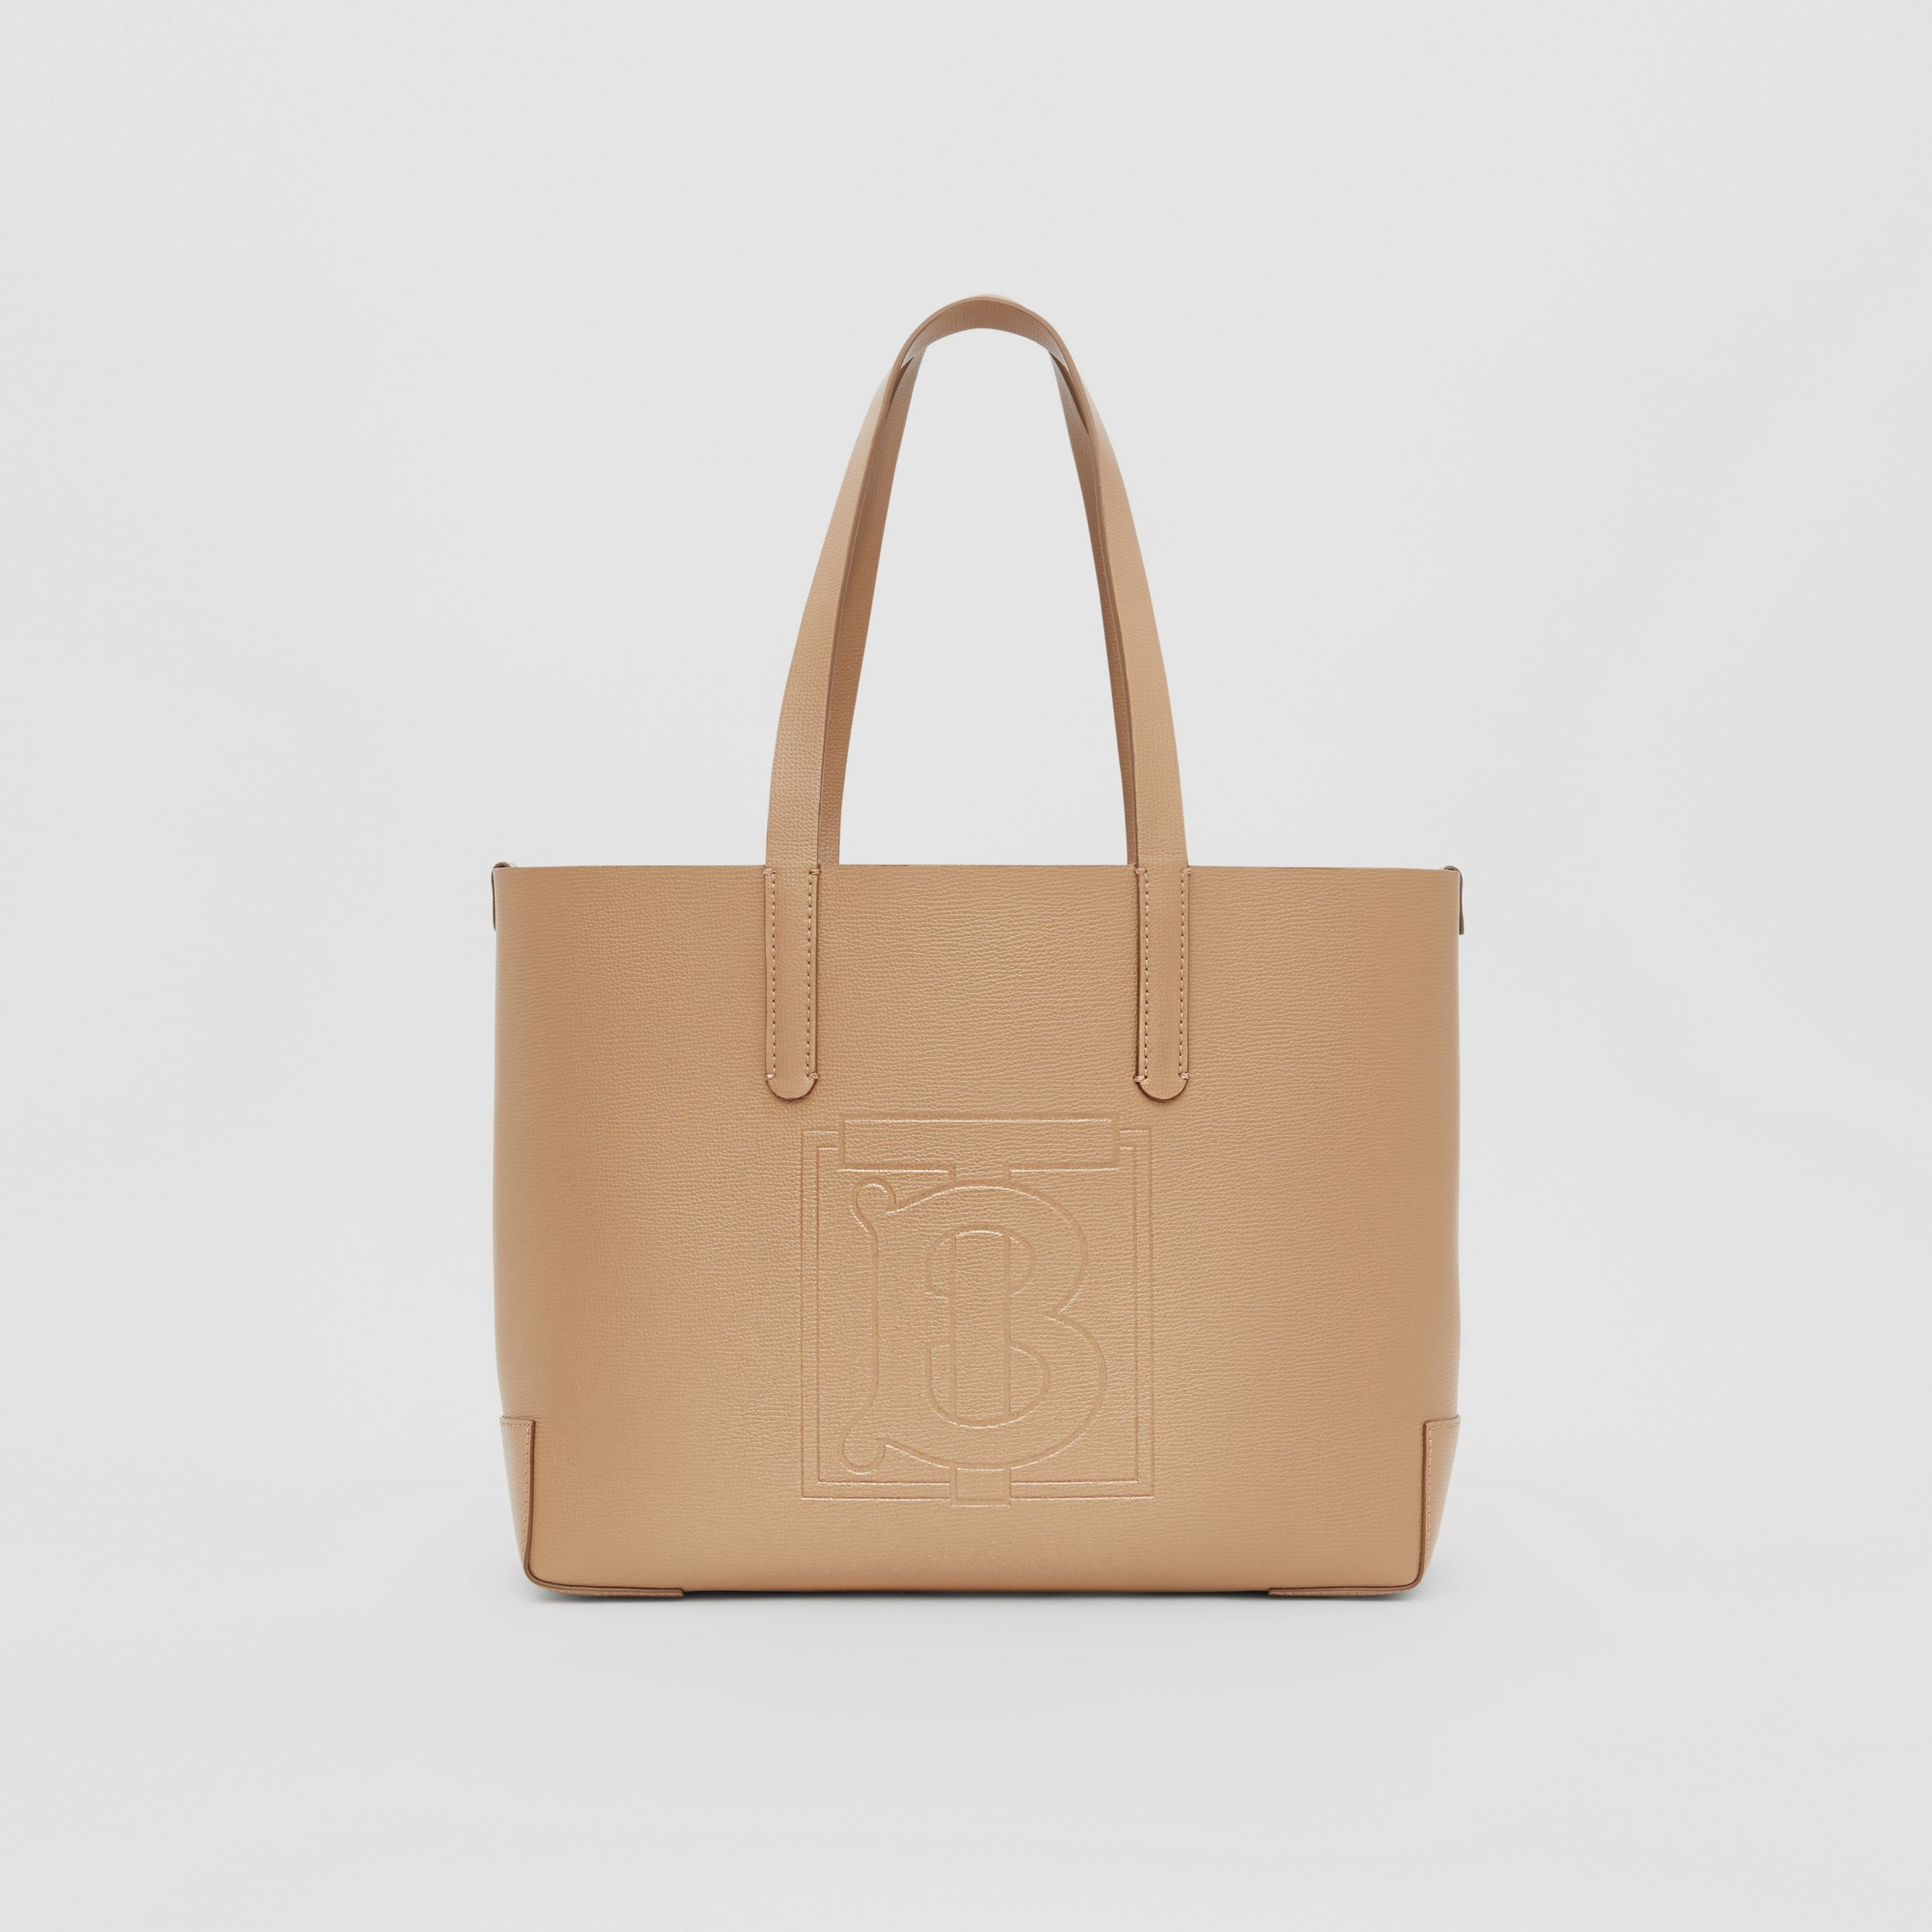 Embossed Monogram Motif Leather Tote in Camel - Women | Burberry - 1